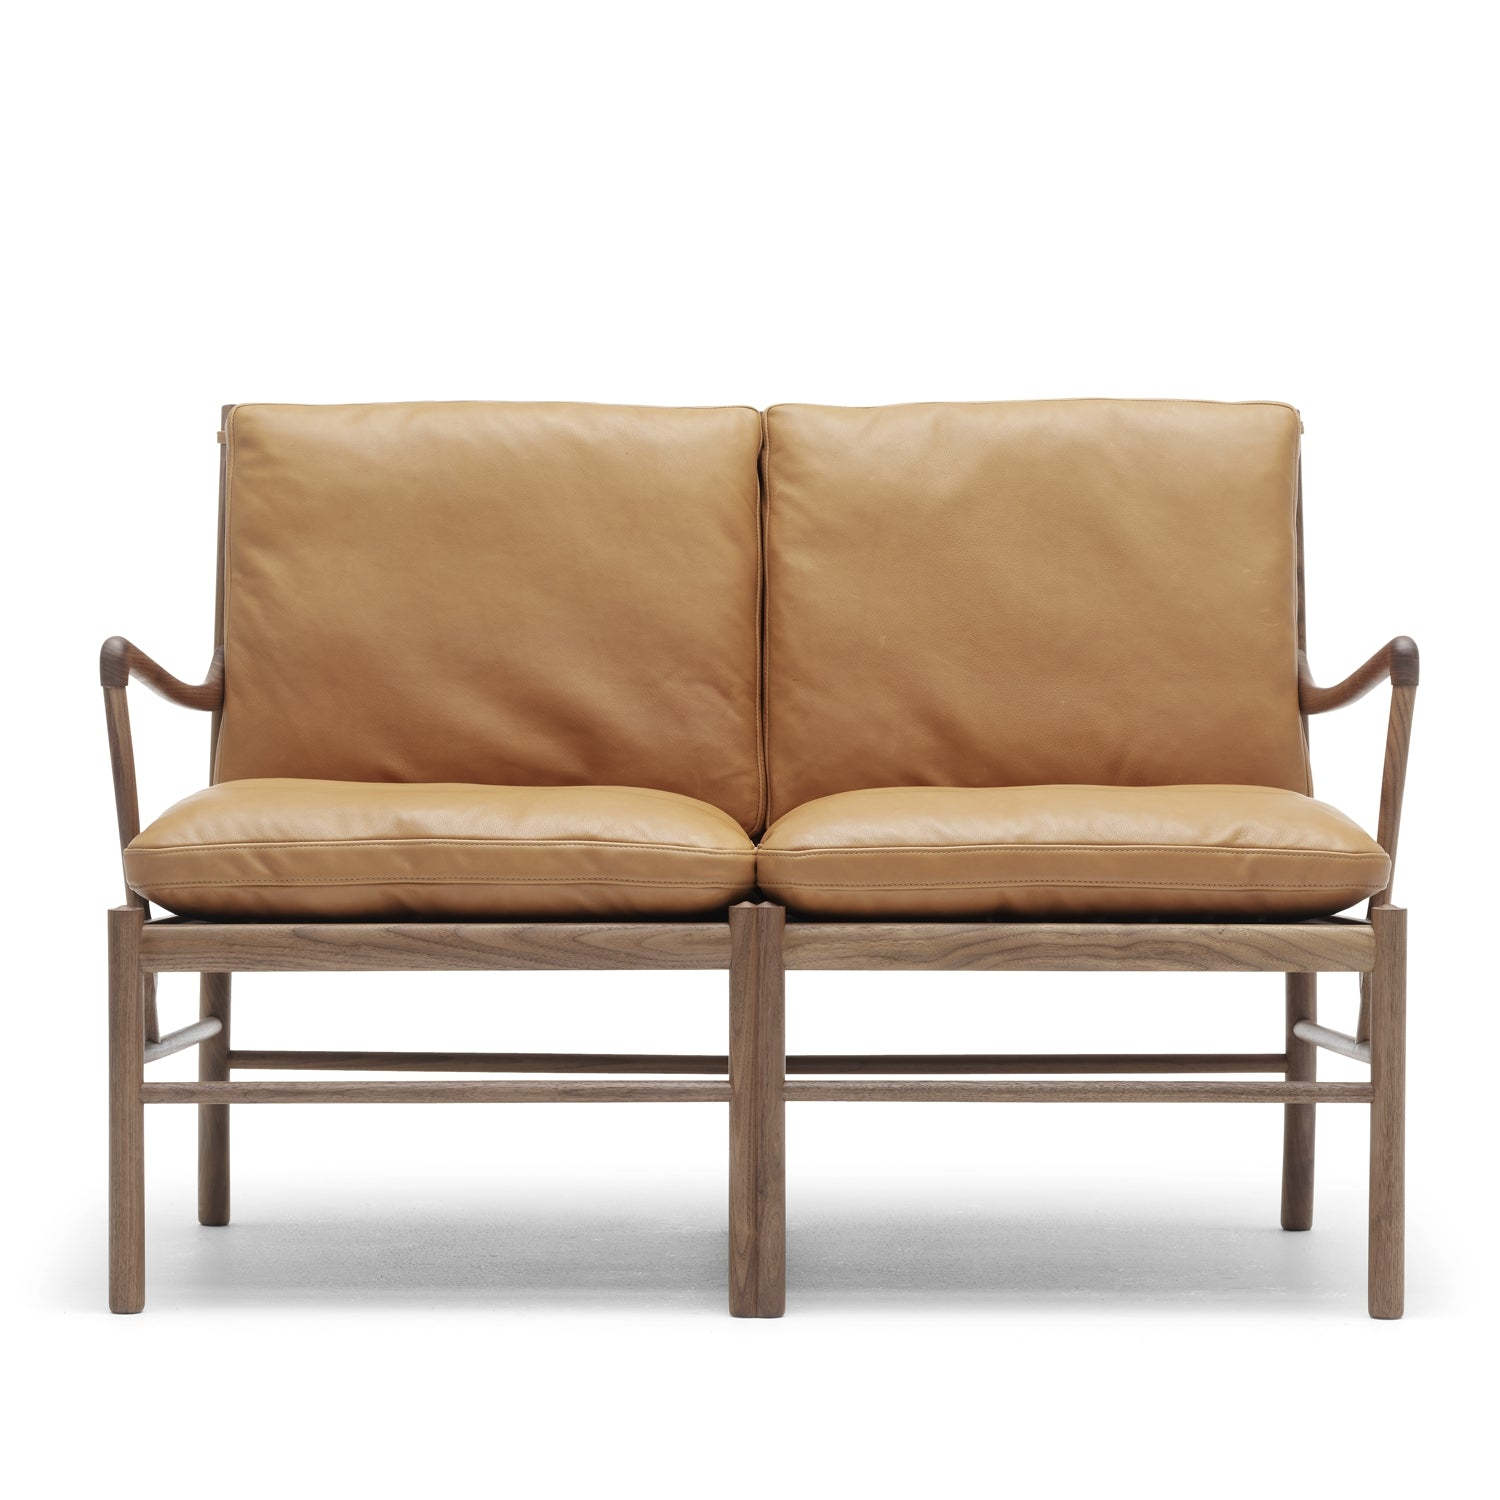 CARL HANSEN & SØN | OW149-2 Colonial Sofa | Design: Ole Wanscher 1964 | Made to order - available in 10 weeks.